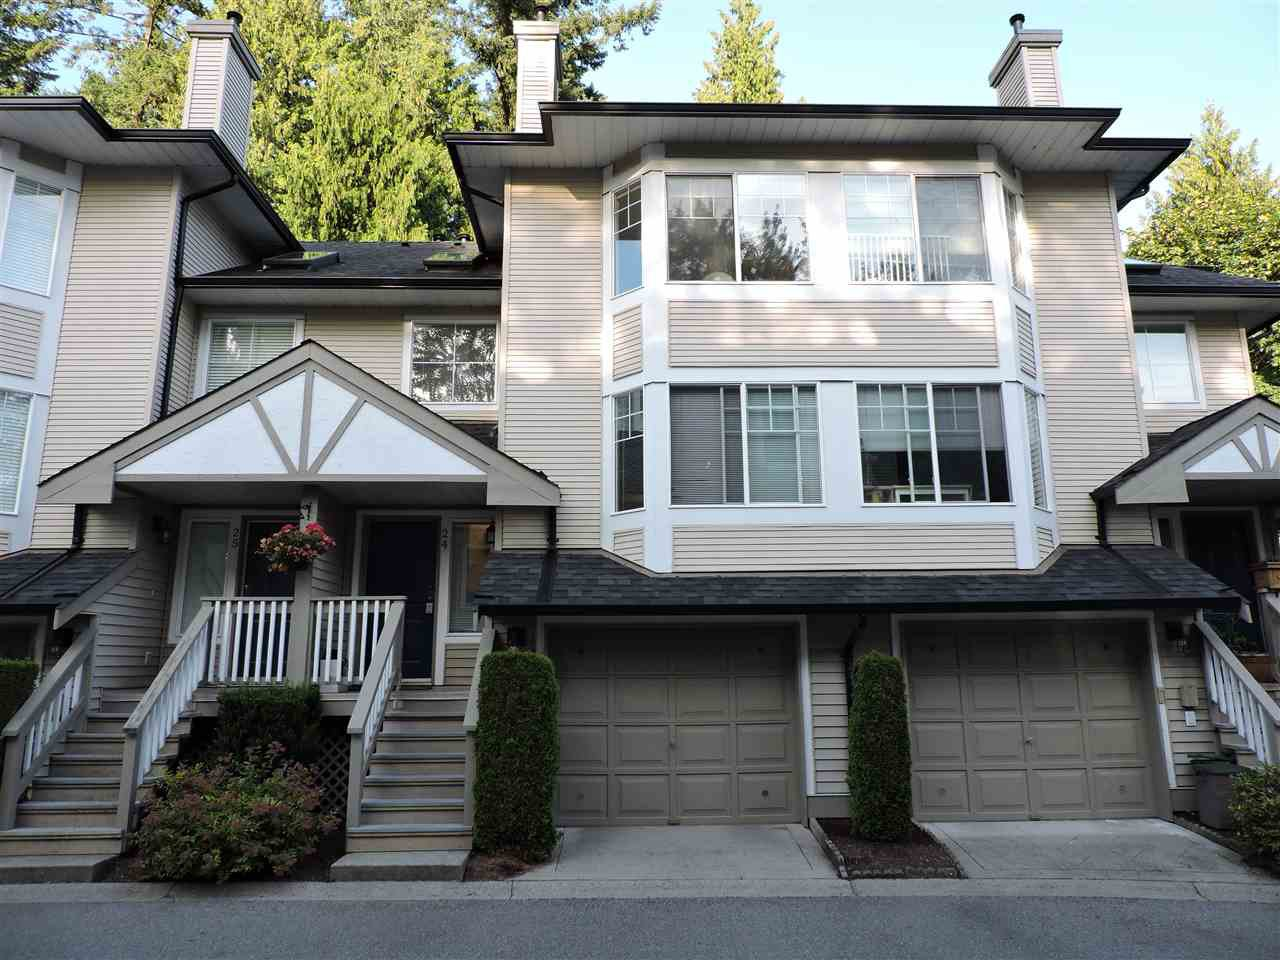 Main Photo: 24 7640 BLOTT STREET in Mission: Mission BC Townhouse for sale : MLS®# R2469418